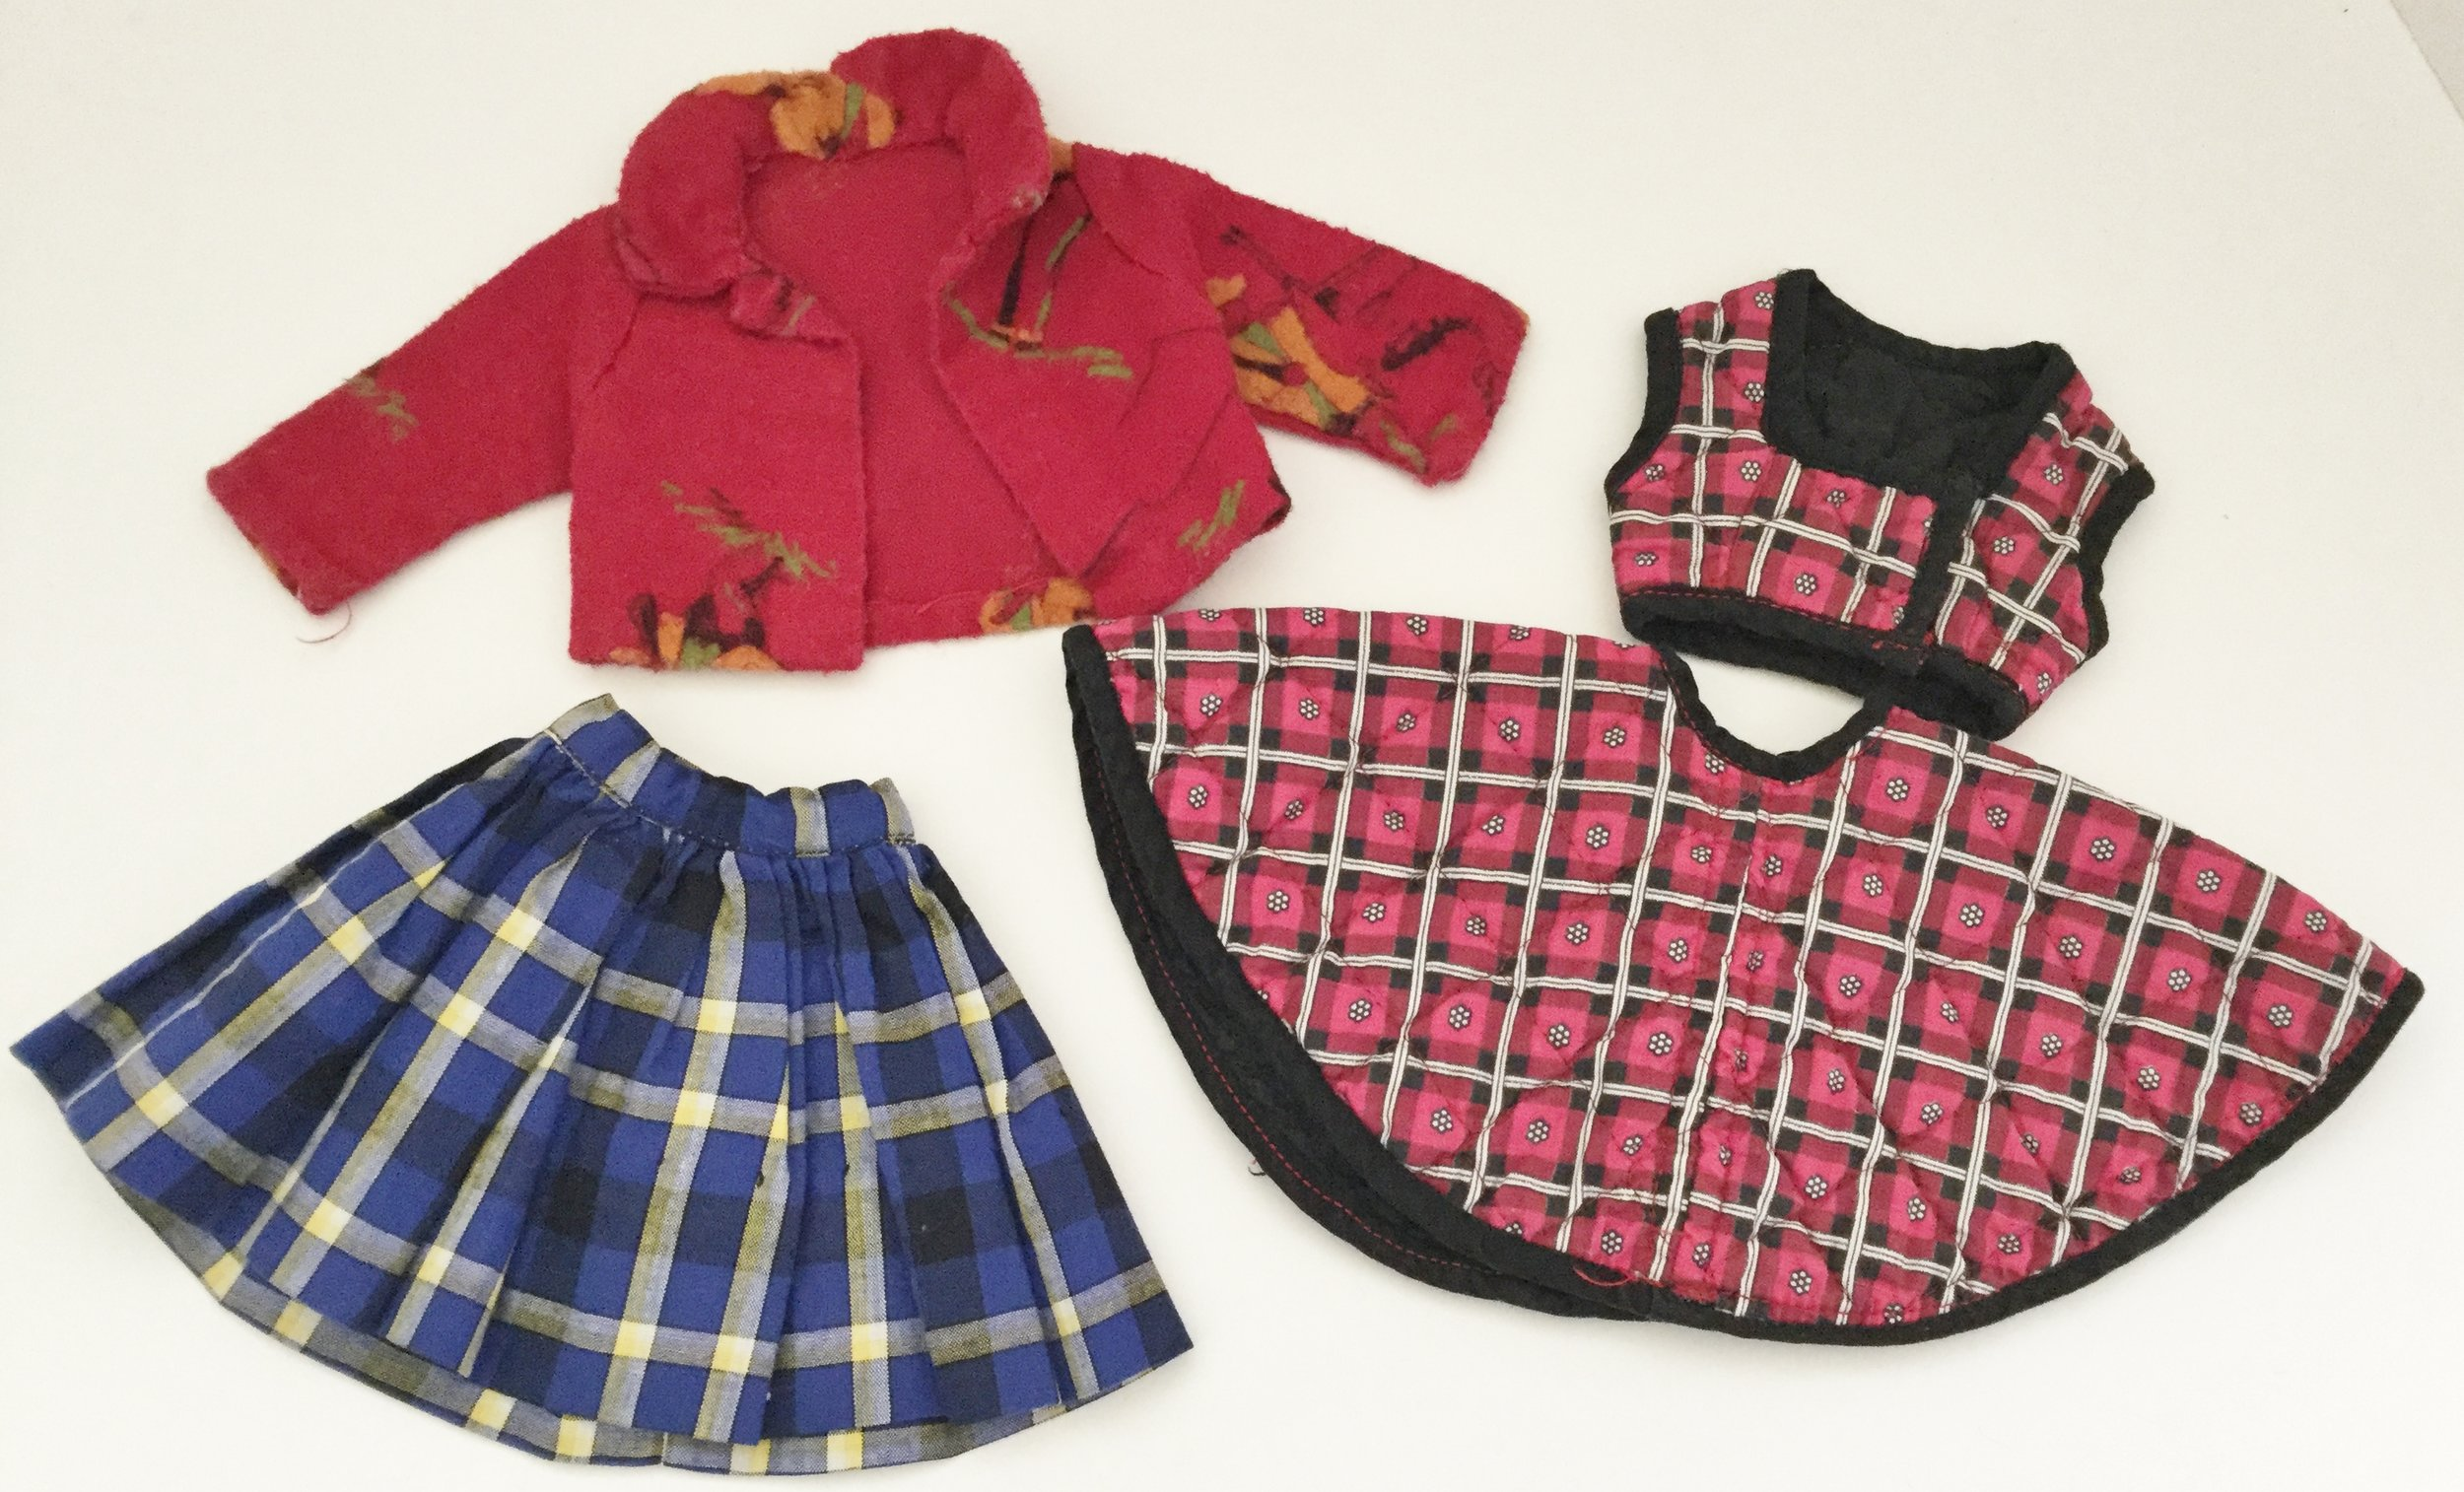 Circular skirt with weskit and blue plaid skirt were to be worn with her original white shirt and bow tie.  A red flannel shirt to wear with jeans.